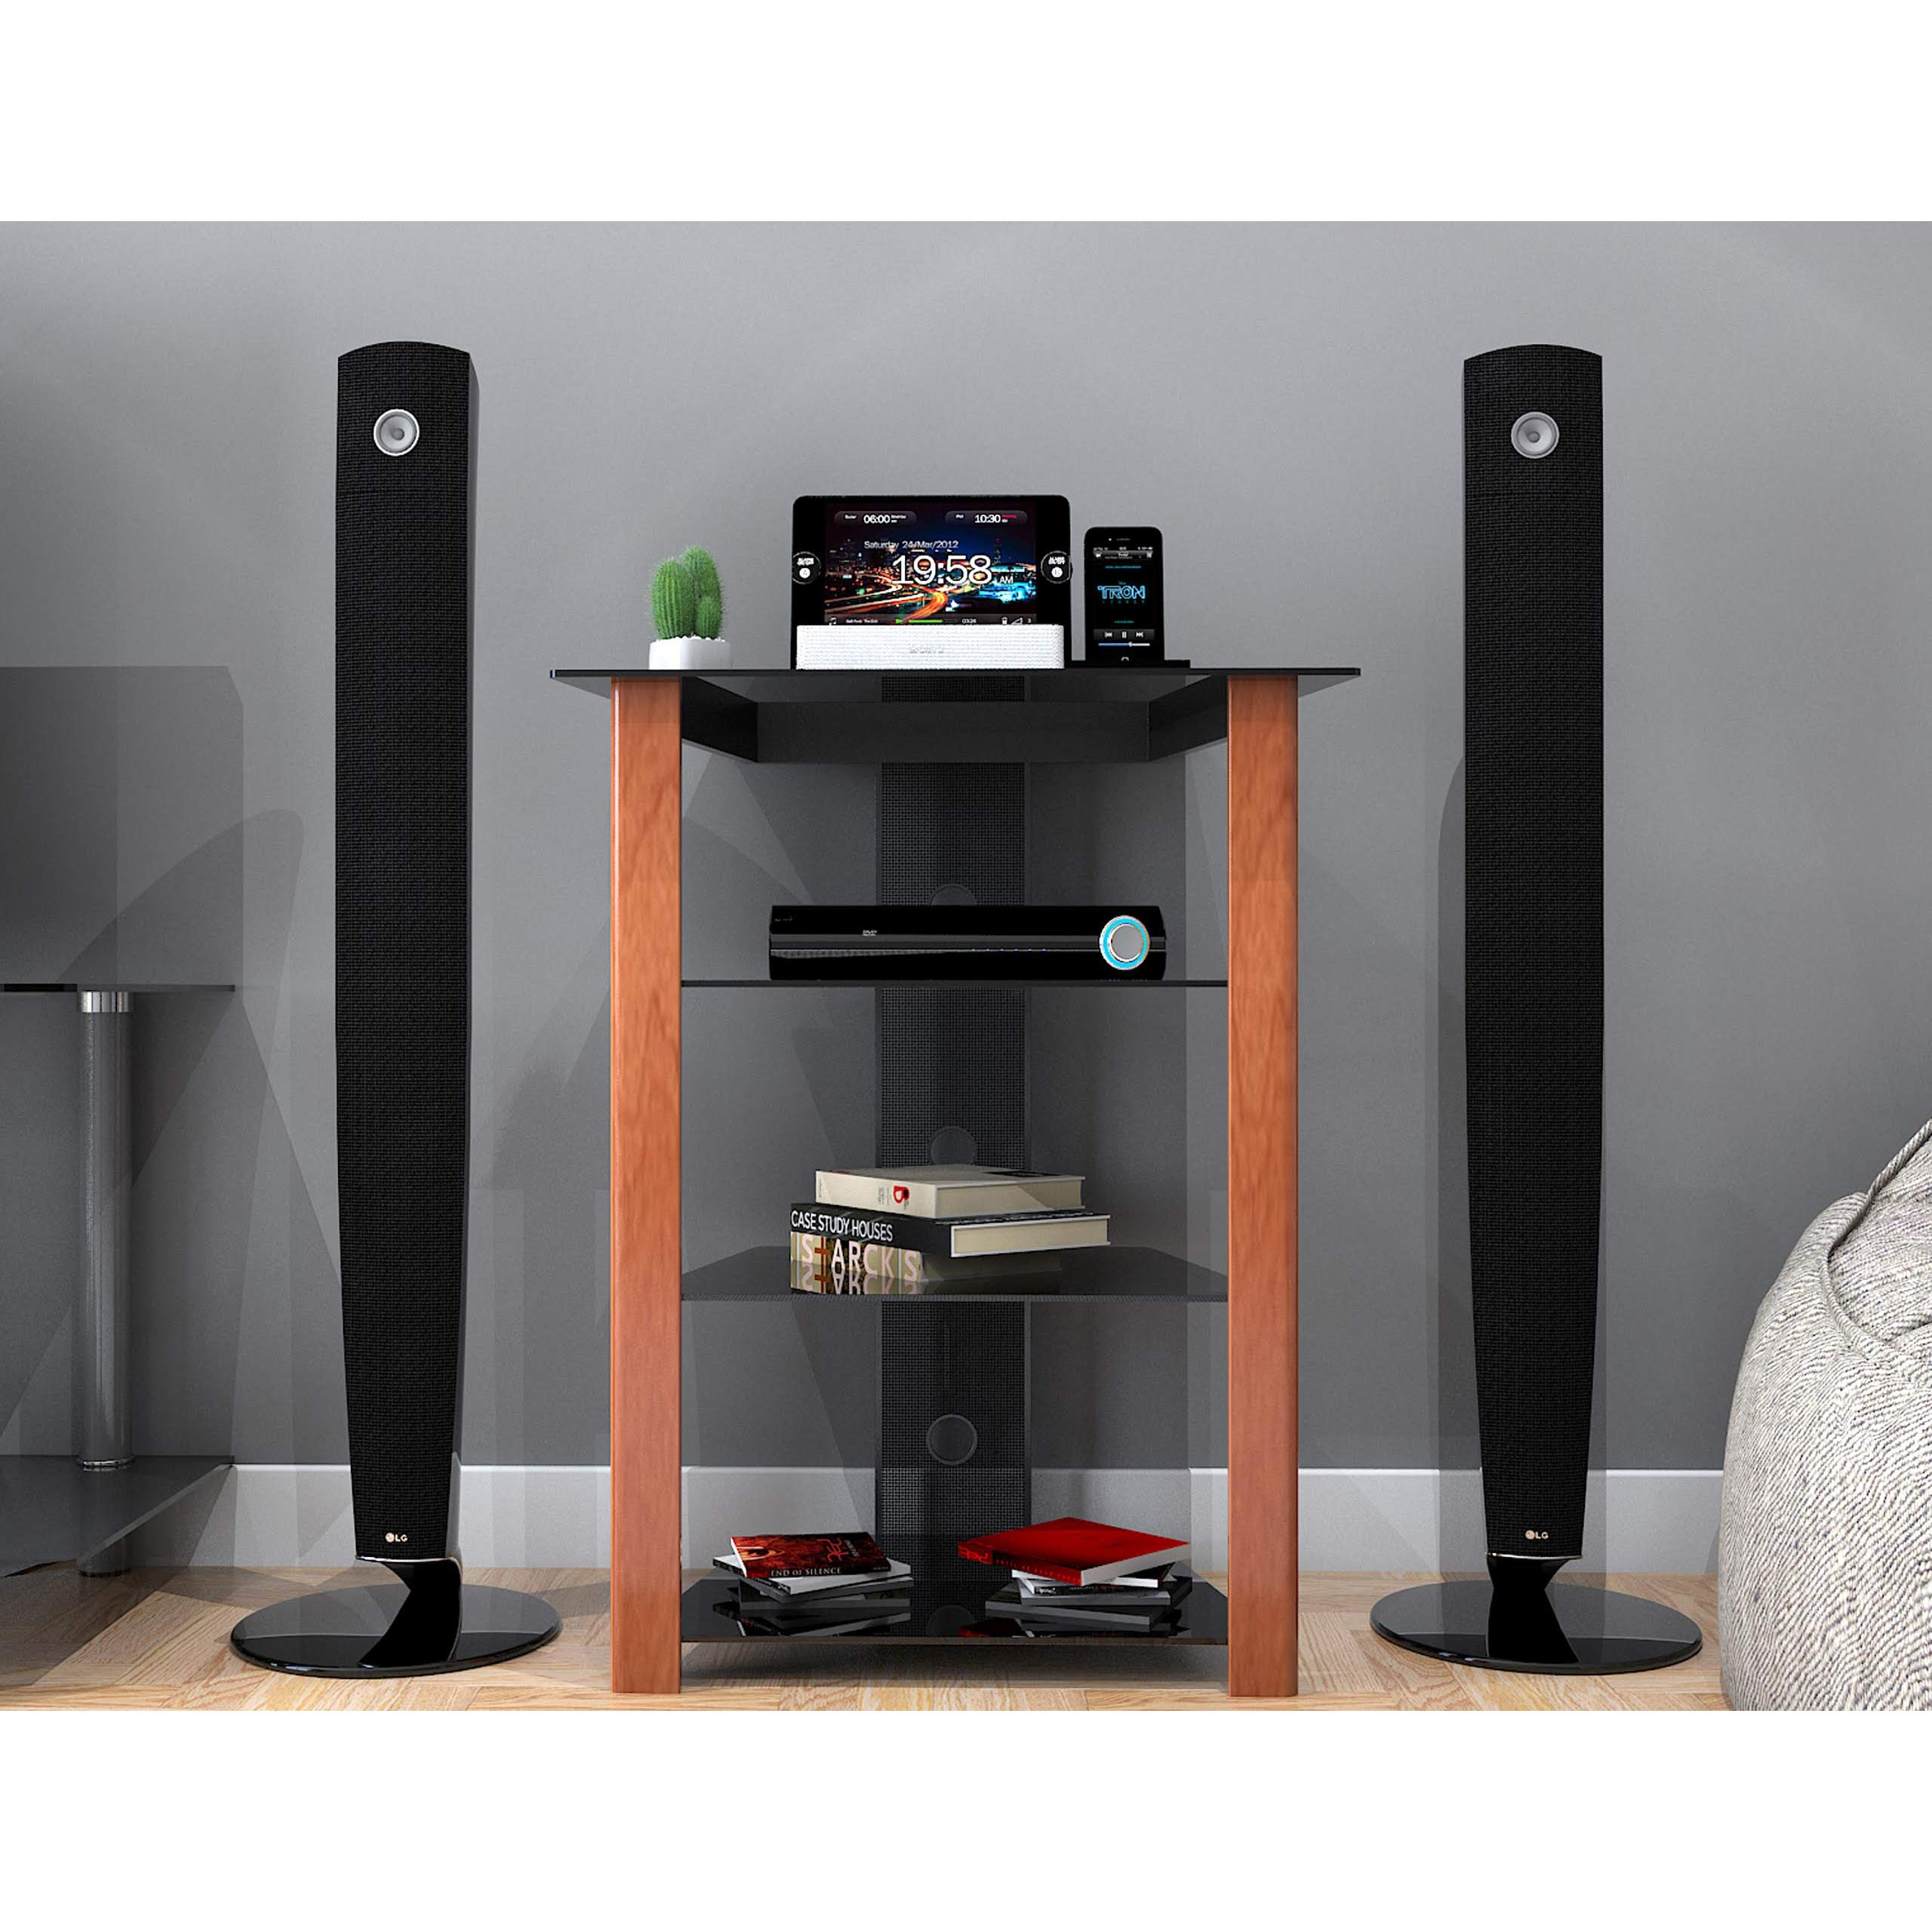 Ryan Rove Ashton Multi-Level Media Component Stand - Living Room Furniture, Home Theater System, Entertainment Center, Console Shelf and Storage Rack - Cable Management, Glass Shelves - Wood Cherry by Ryan Rove